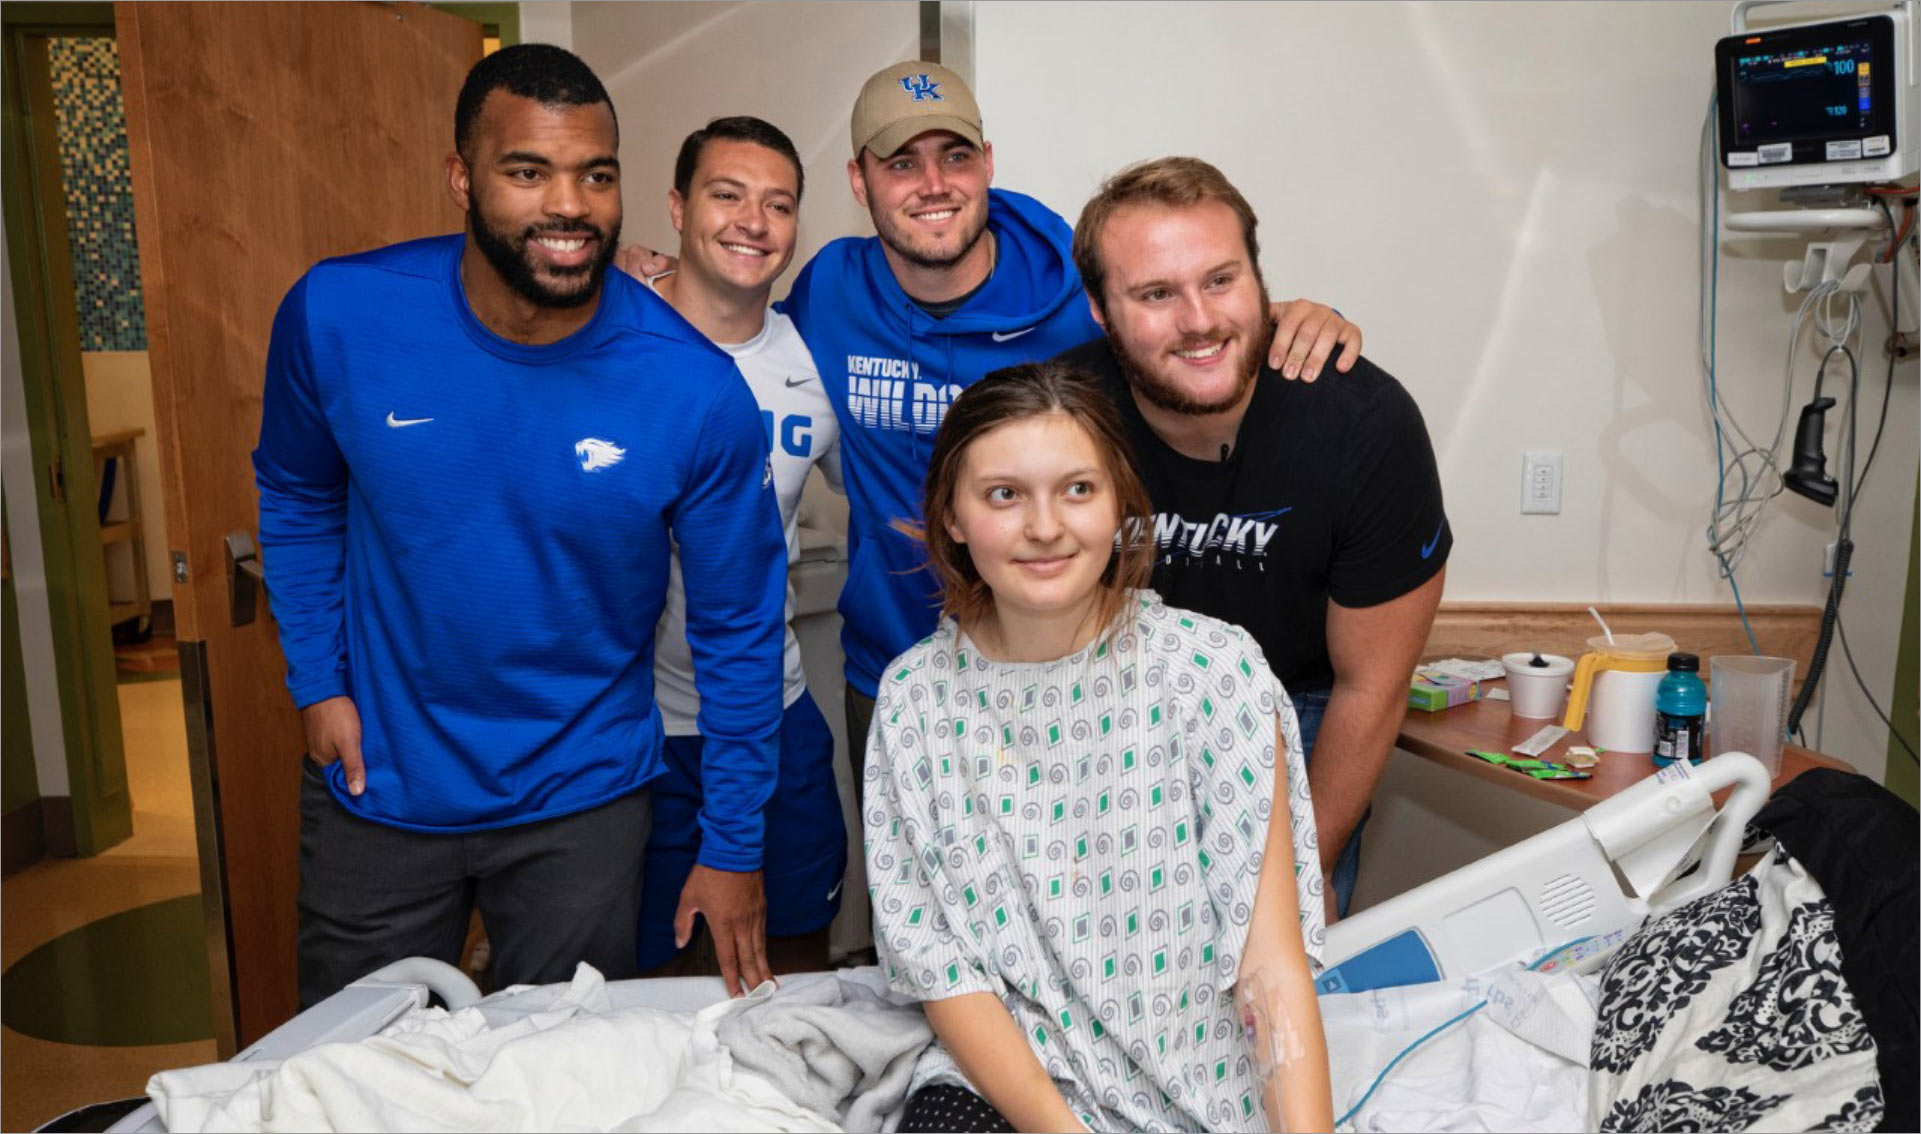 Courtney and three other football players pose with a Kentucky Children's Hospital patient. The patient, a young girl, is sitting in her bed and wearing a hospital gown.